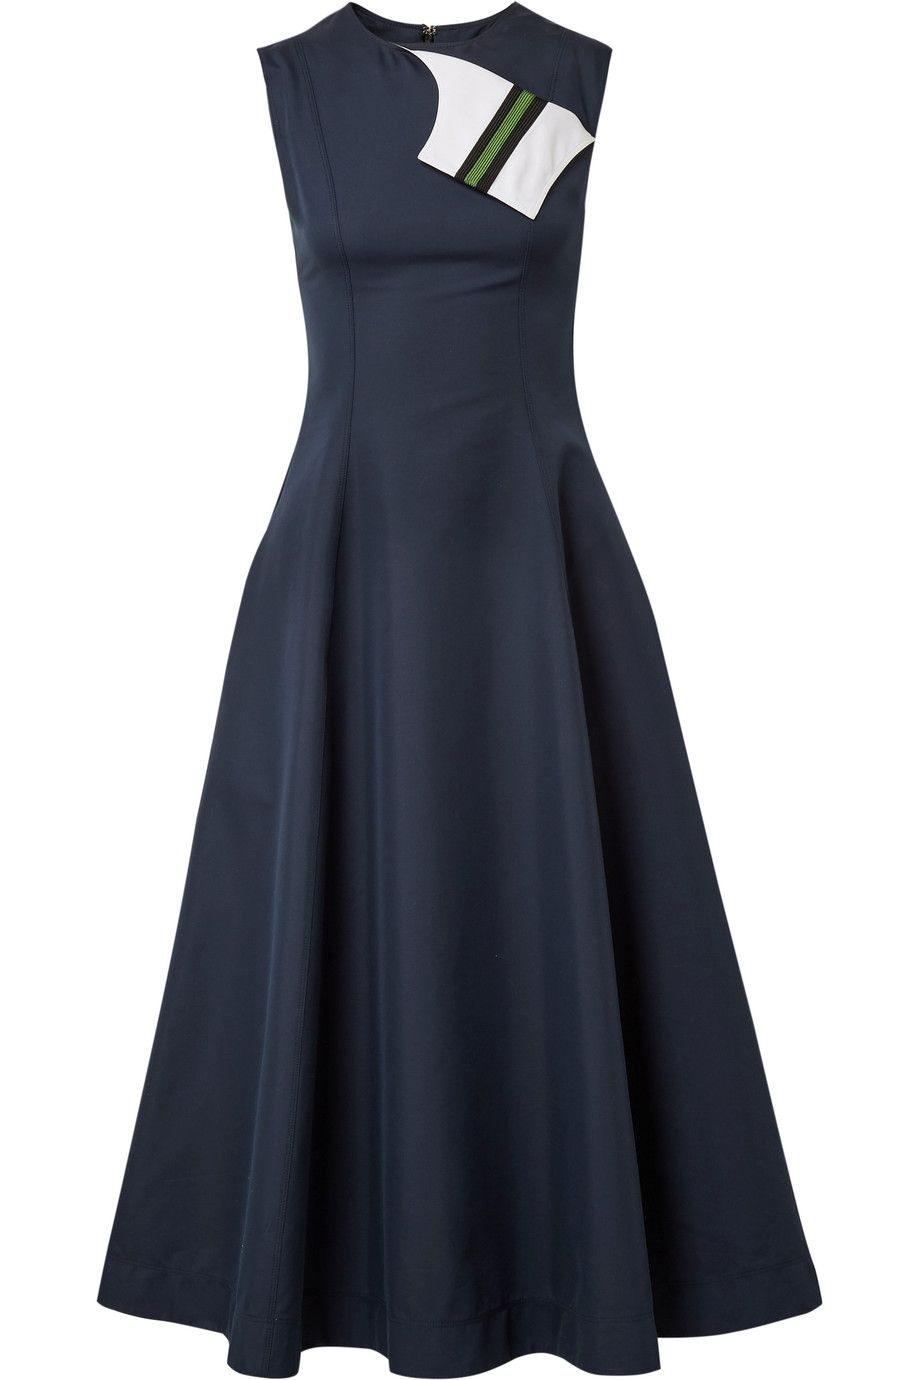 Free Shipping Top Quality All Size Grosgrain-trimmed Cotton And Silk-blend Twill Midi Dress - Midnight blue CALVIN KLEIN 205W39NYC Free Shipping Buy ORTEF